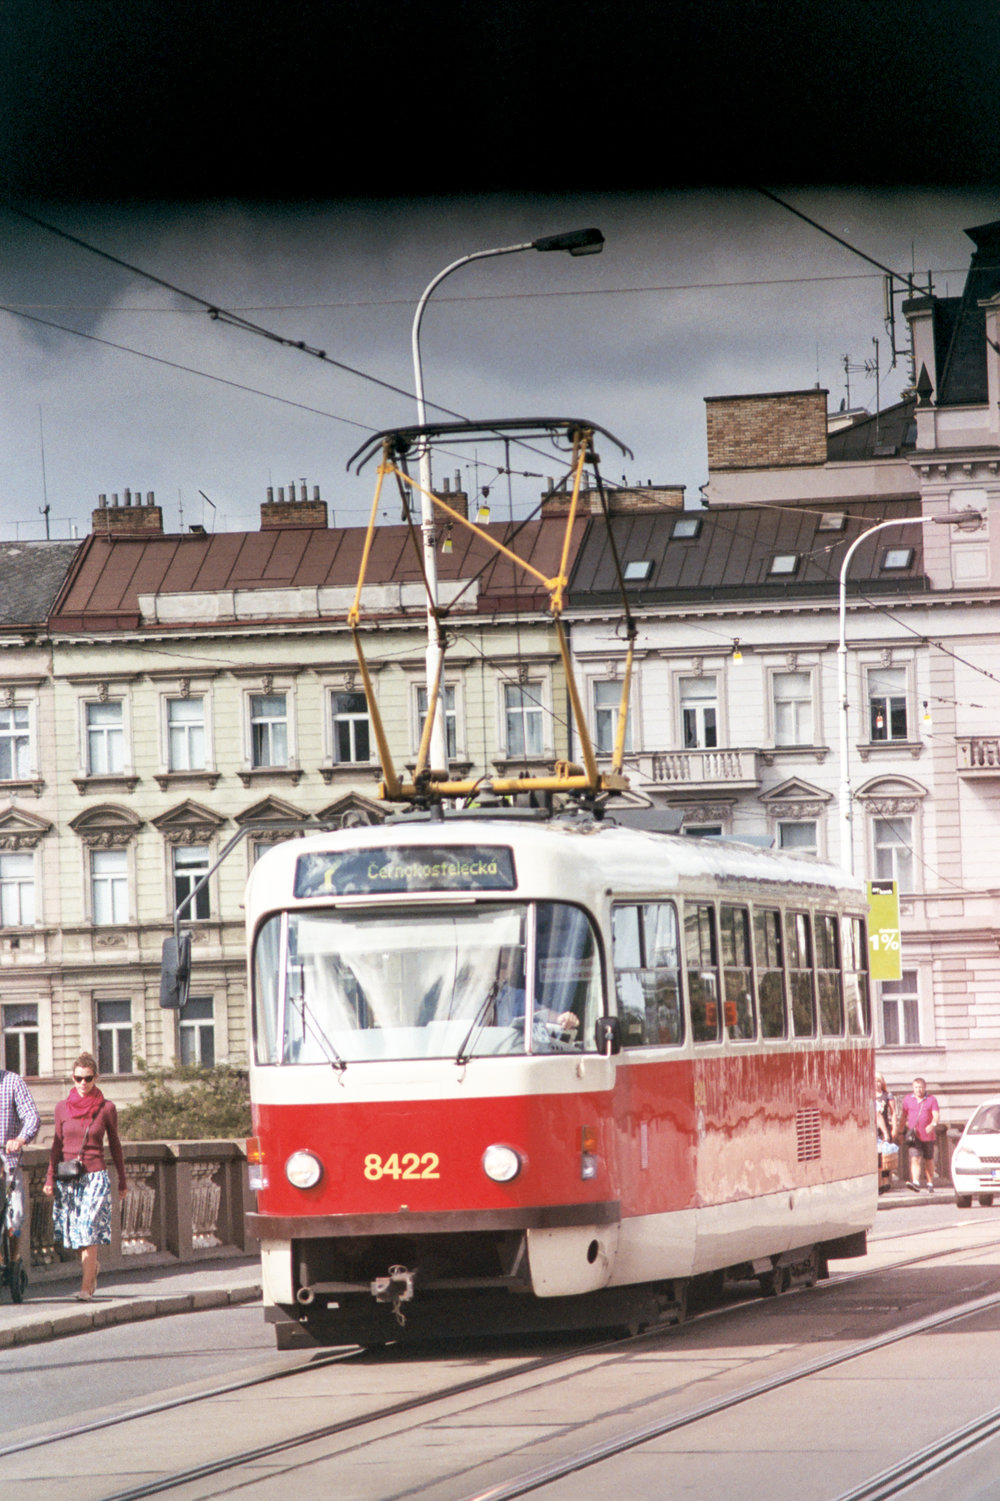 Love these old Eastern European styled trams